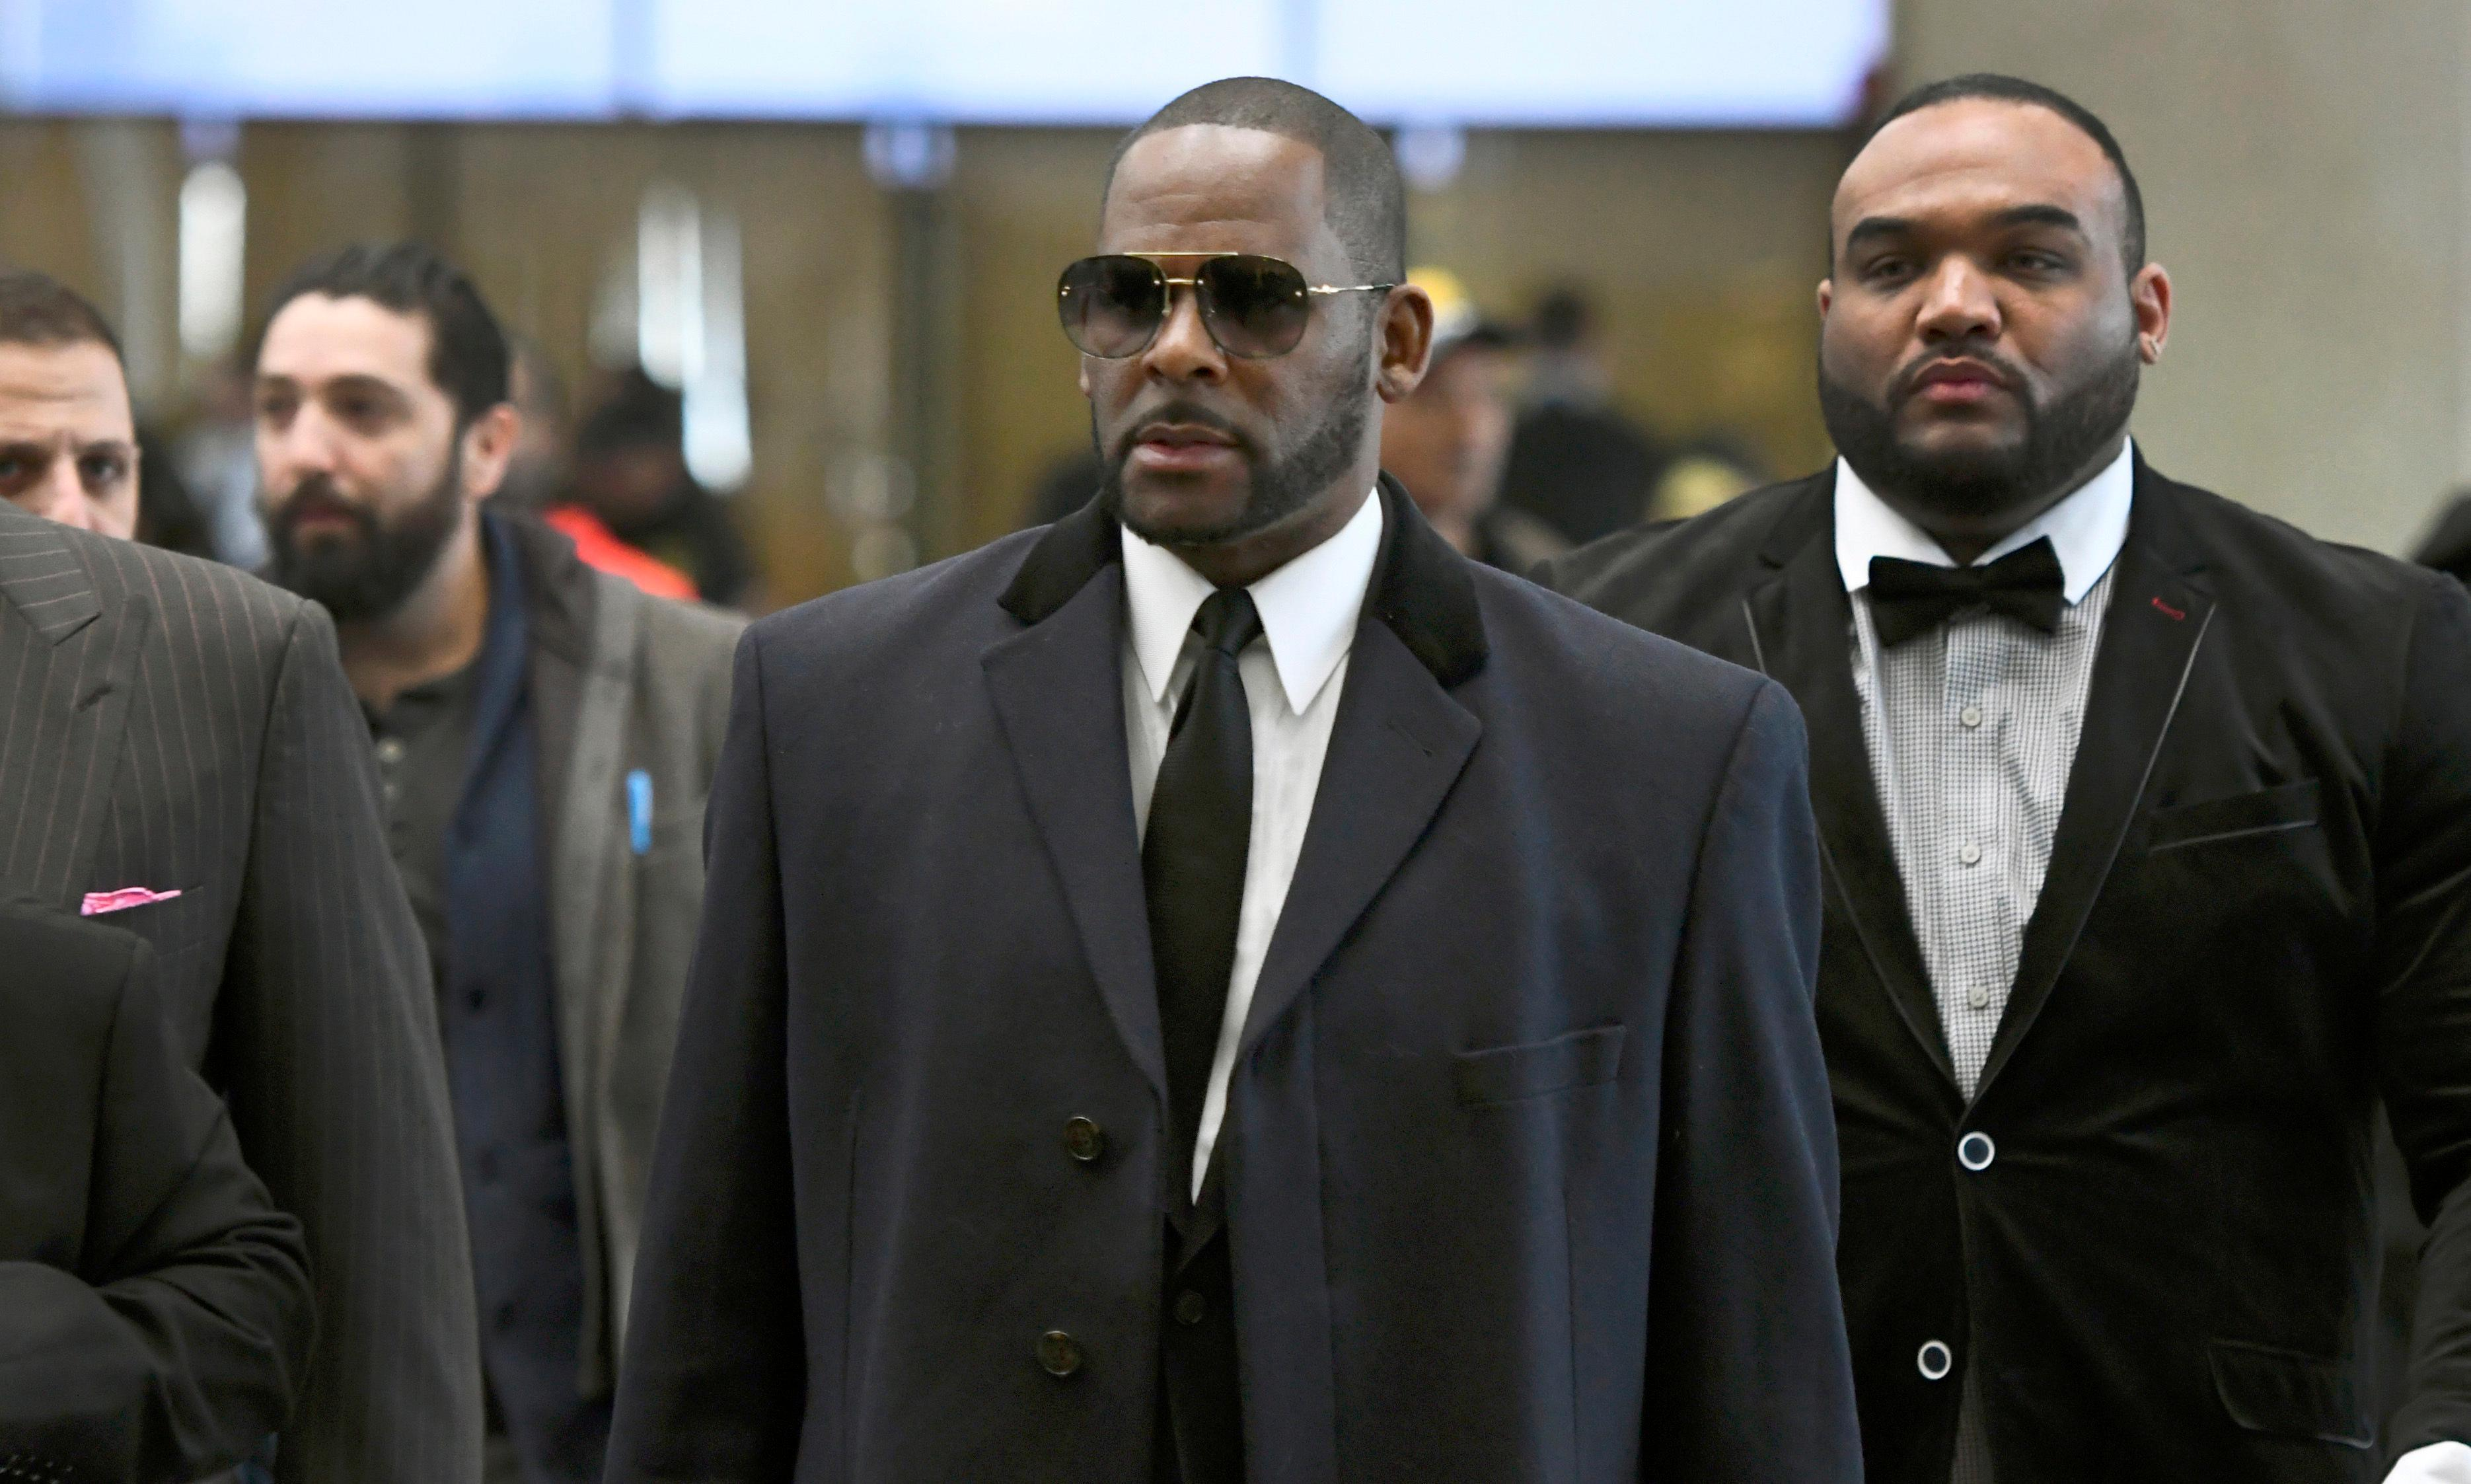 FILE - In this May 7, 2019 file photo, Musician R. Kelly, center, arrives at the Leighton Criminal Court building for a hearing in Chicago. (AP Photo/Matt Marton, File)